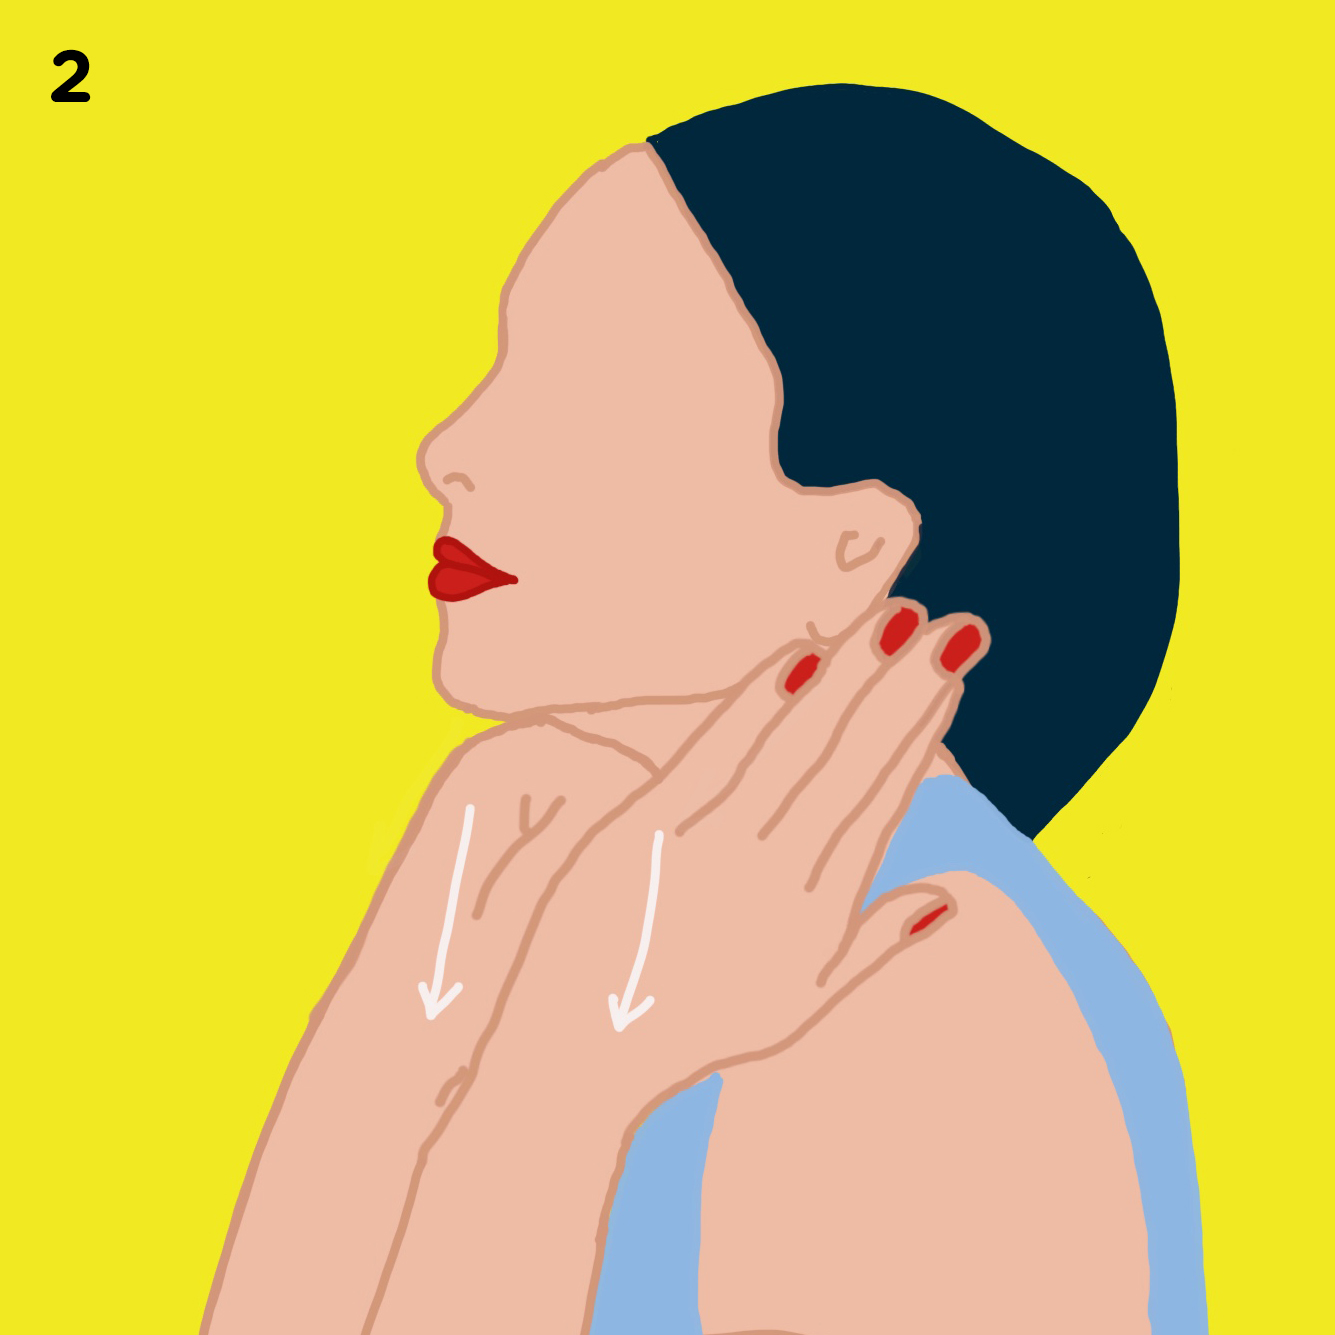 2. UNDERNEATH YOUR EARS   Now place the flat part of your fingers and top of palm underneath the ears and massage by pumping and pulling down slowing. You want to do this 5 times.